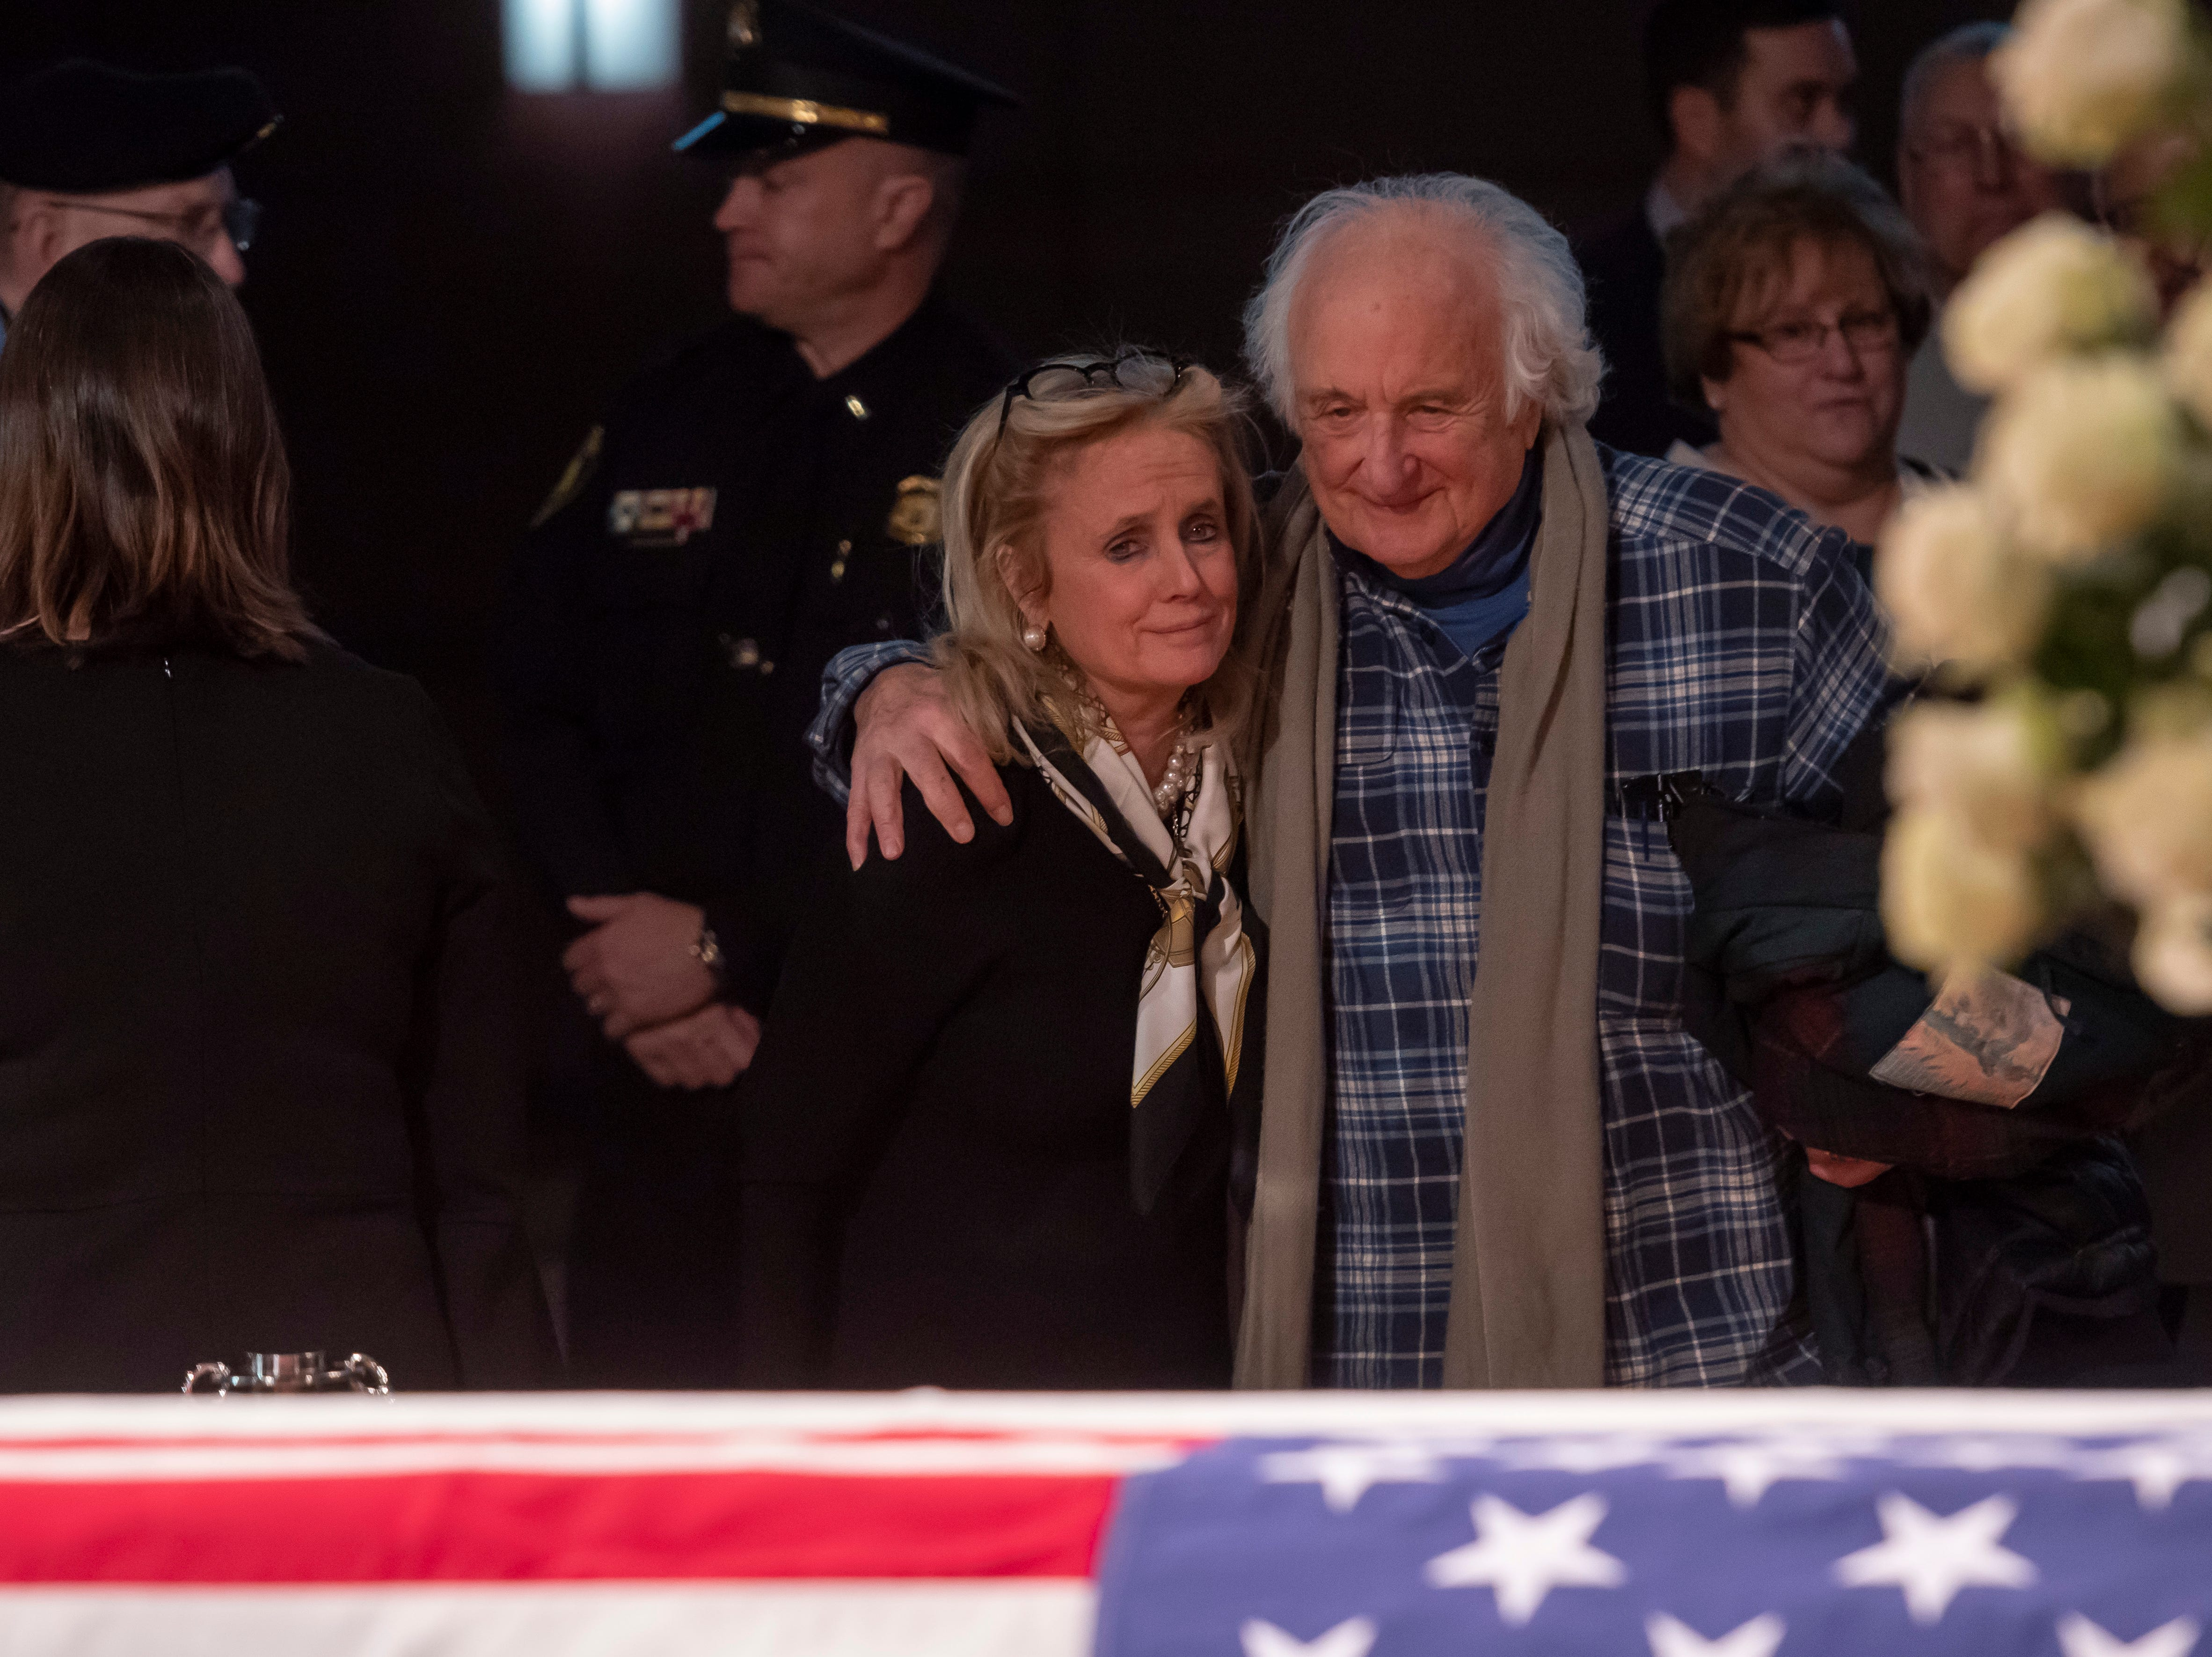 Debbie Dingell and former U.S. Rep. Sander Levin console each other during a visitation for former U.S. Rep. John Dingell.